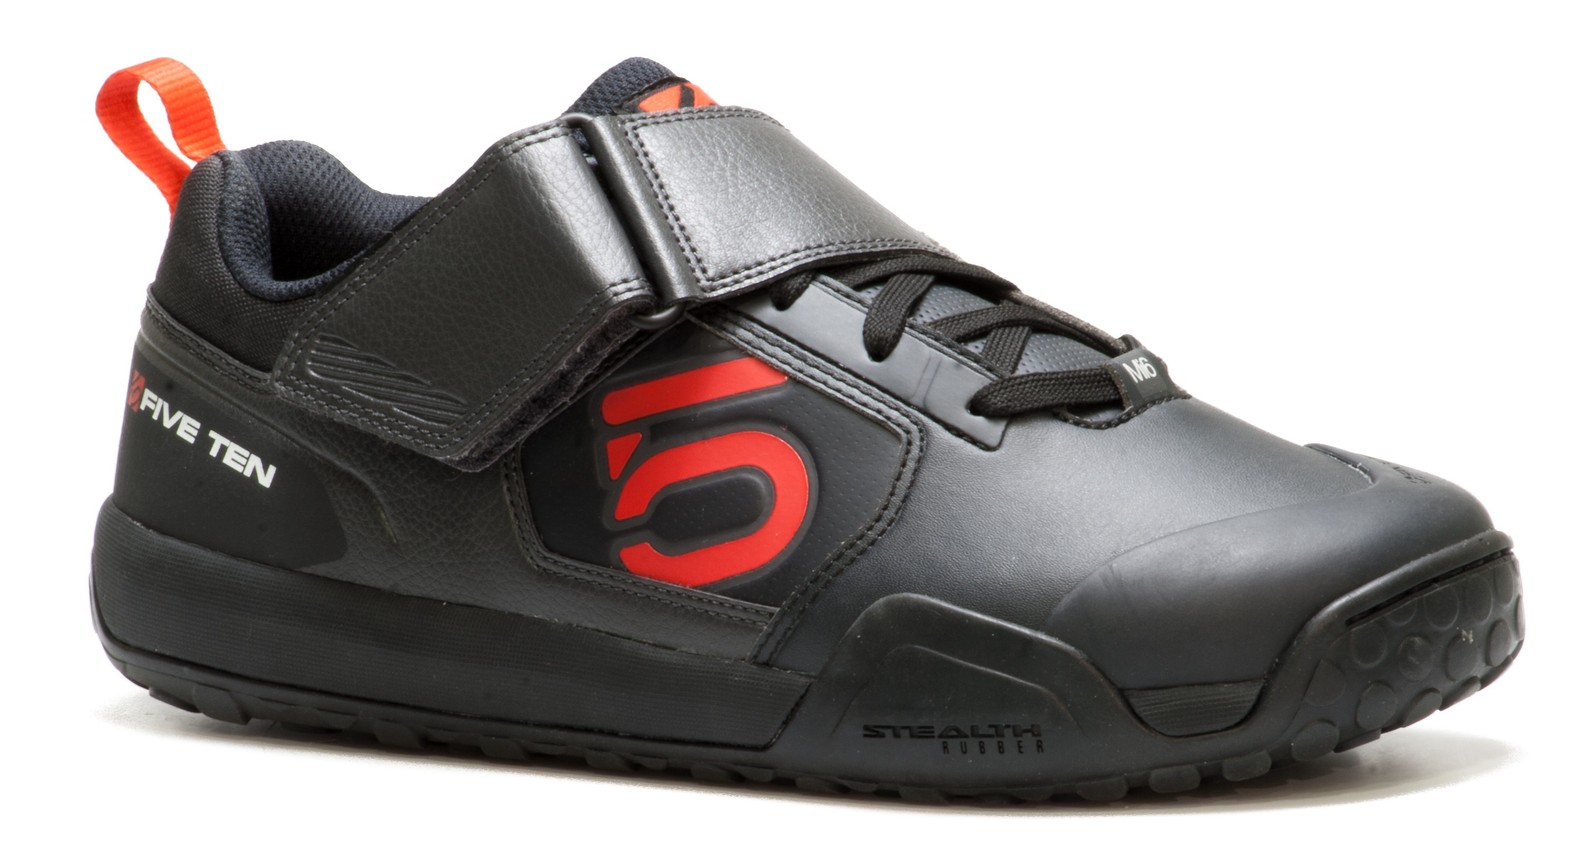 Five Ten Impact VXi Clipless Shoe Five Ten Impact VXi Clipless - Team Black